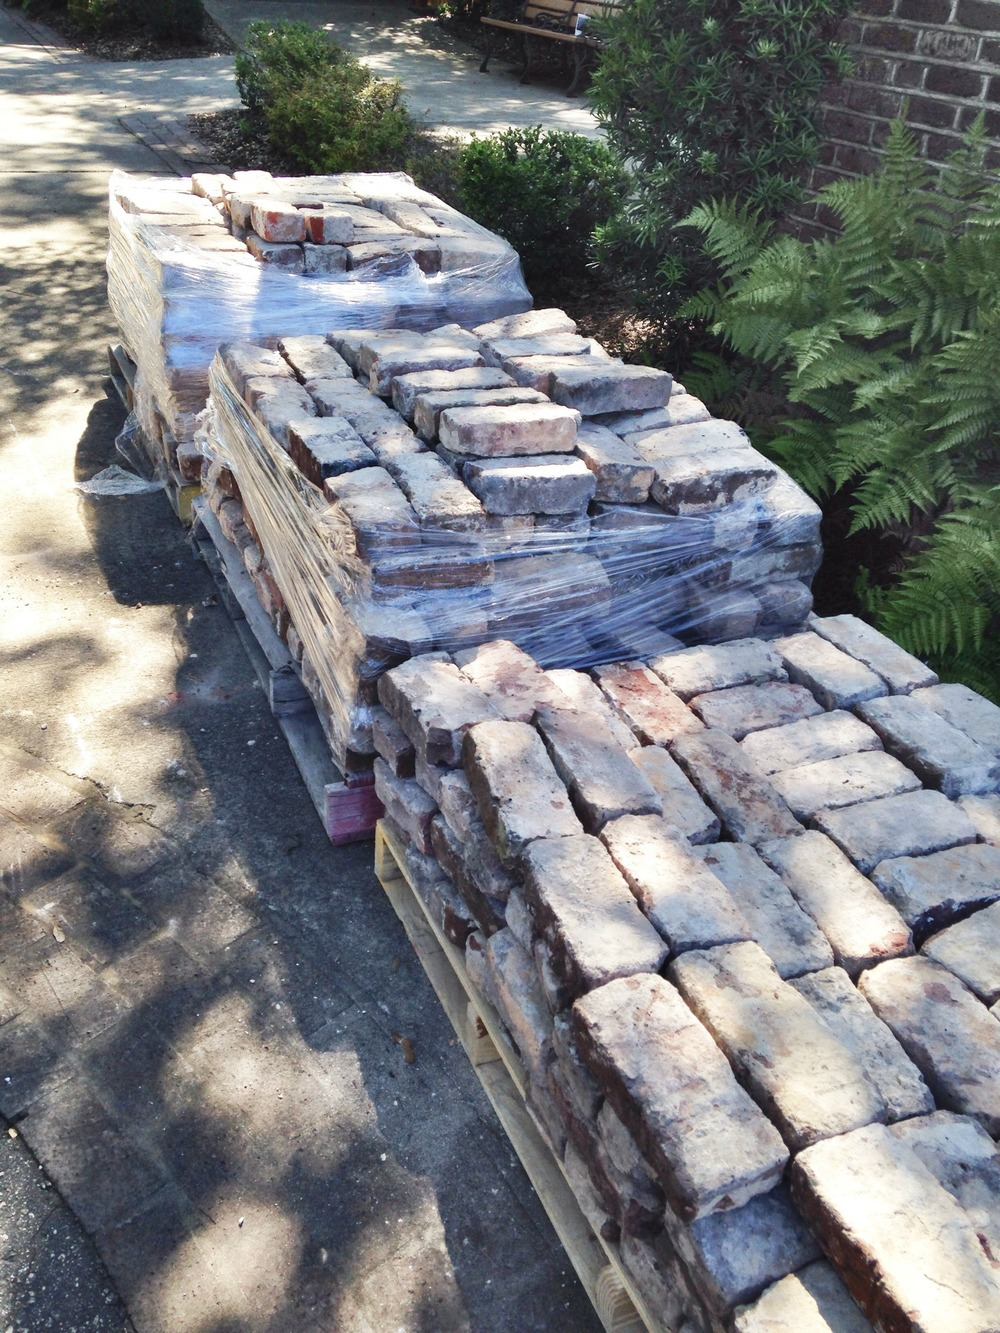 Bricks piling up - 1500.jpg